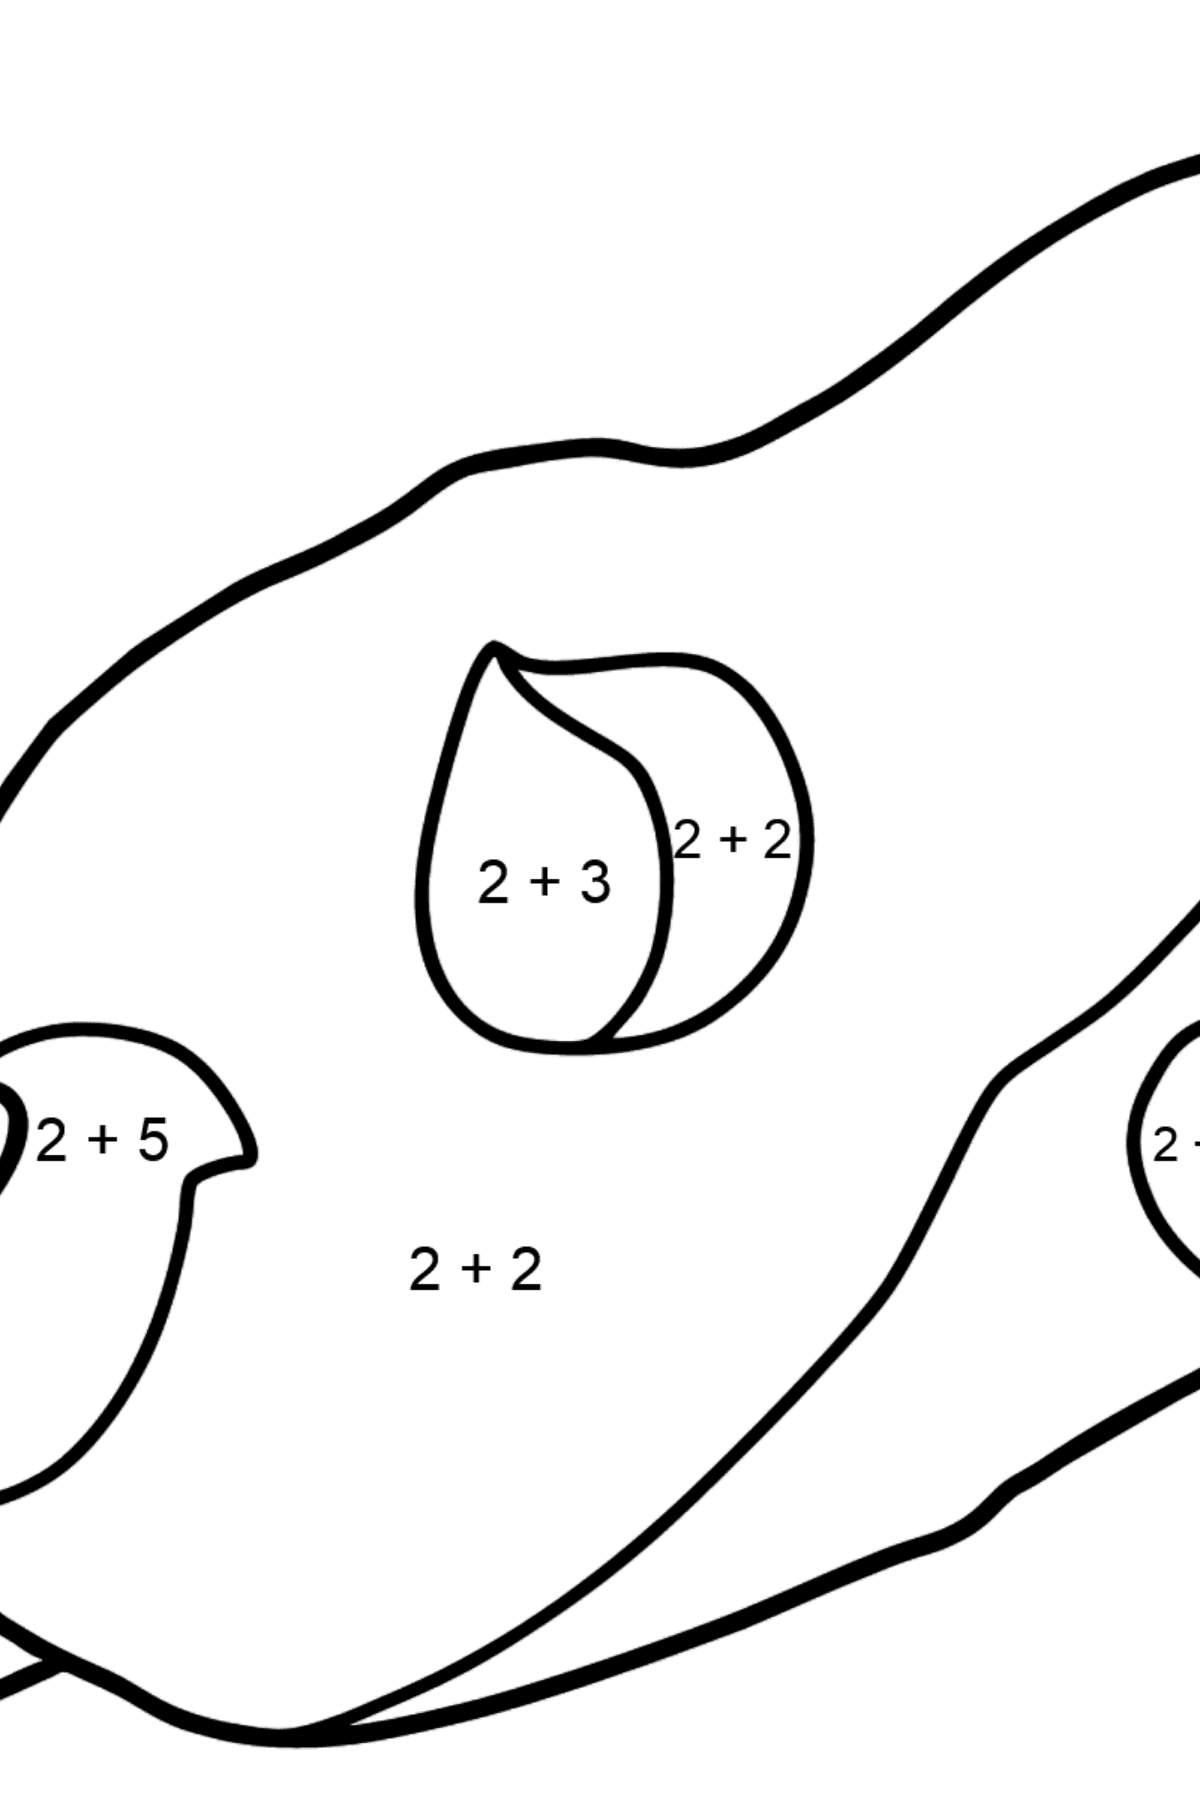 Asteroid coloring page - Math Coloring - Addition for Kids